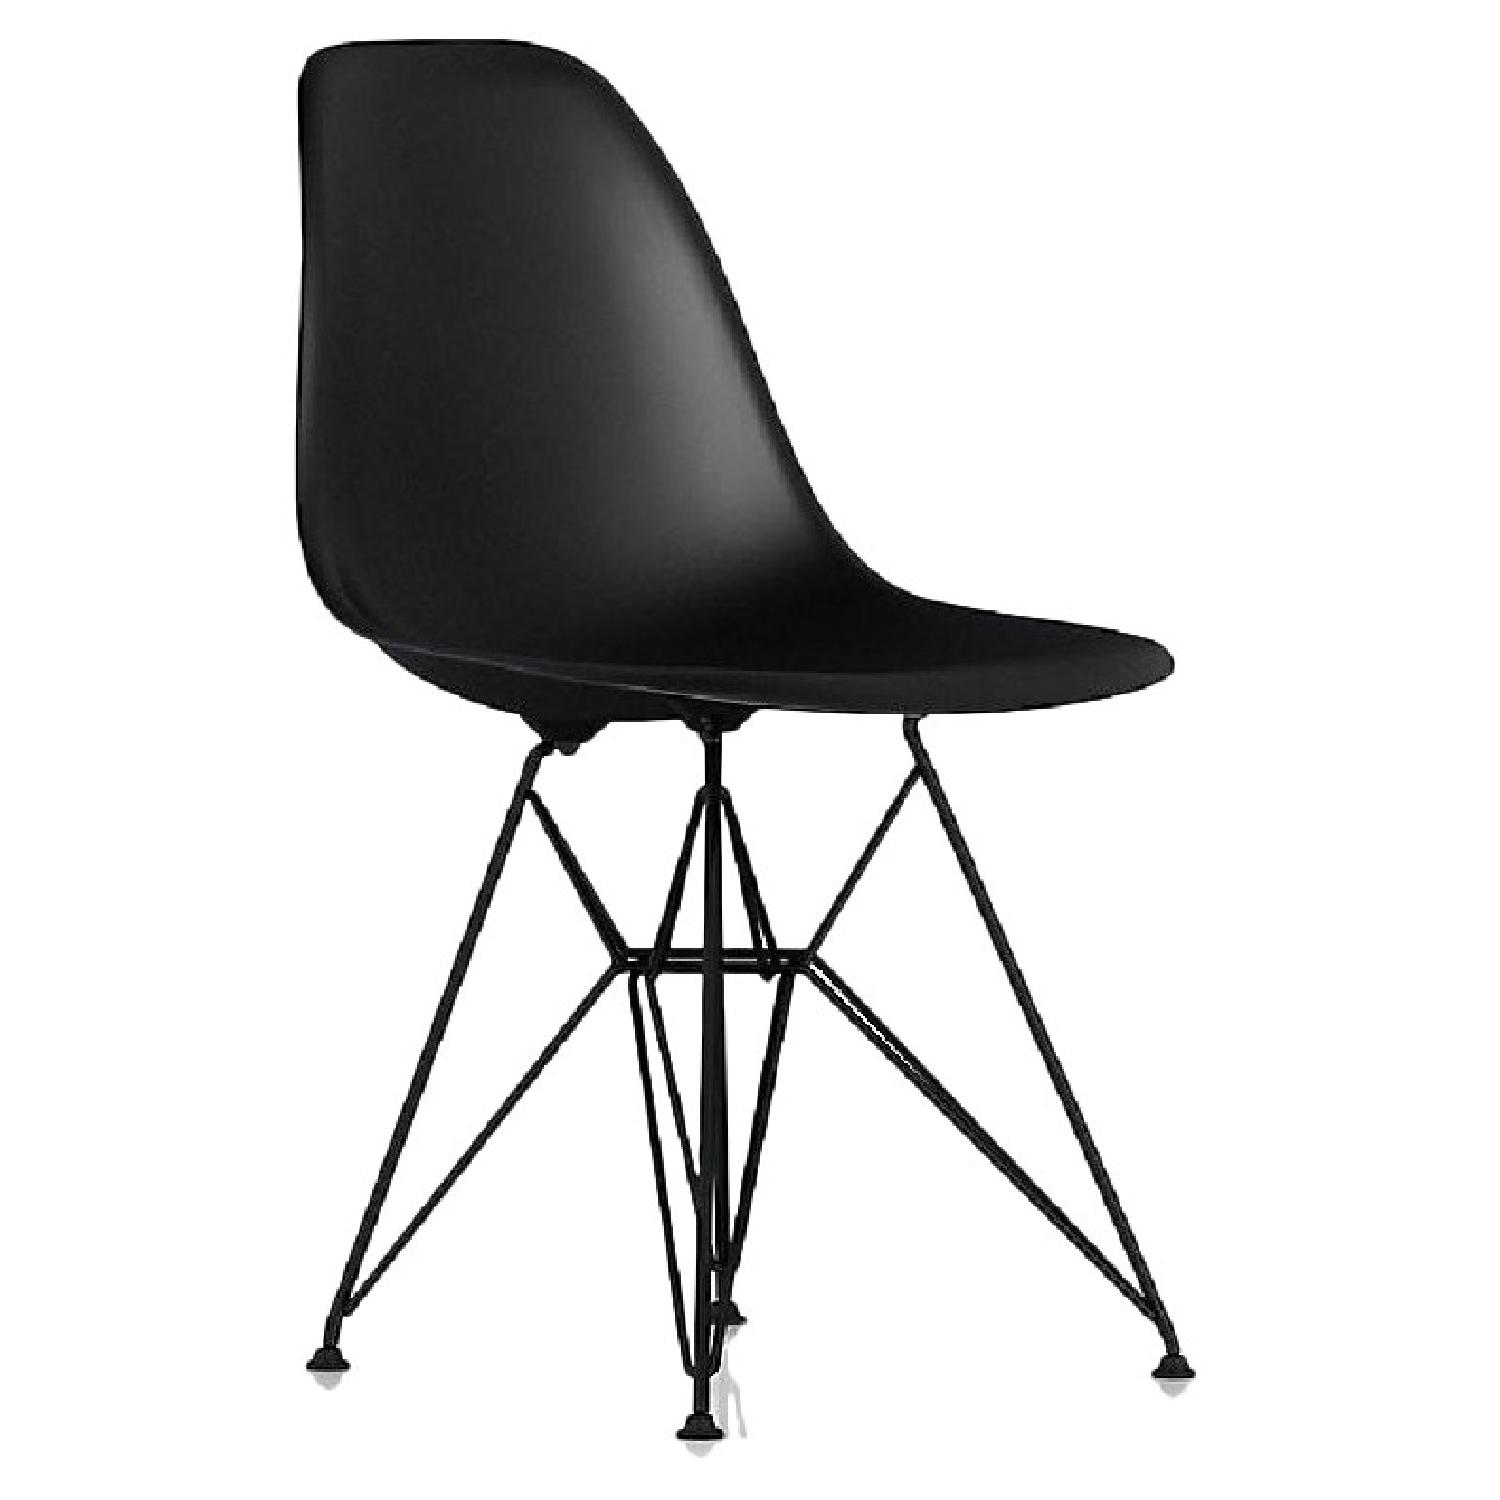 Eames Molded Plastic Black Wire Base Side Chairs - image-0